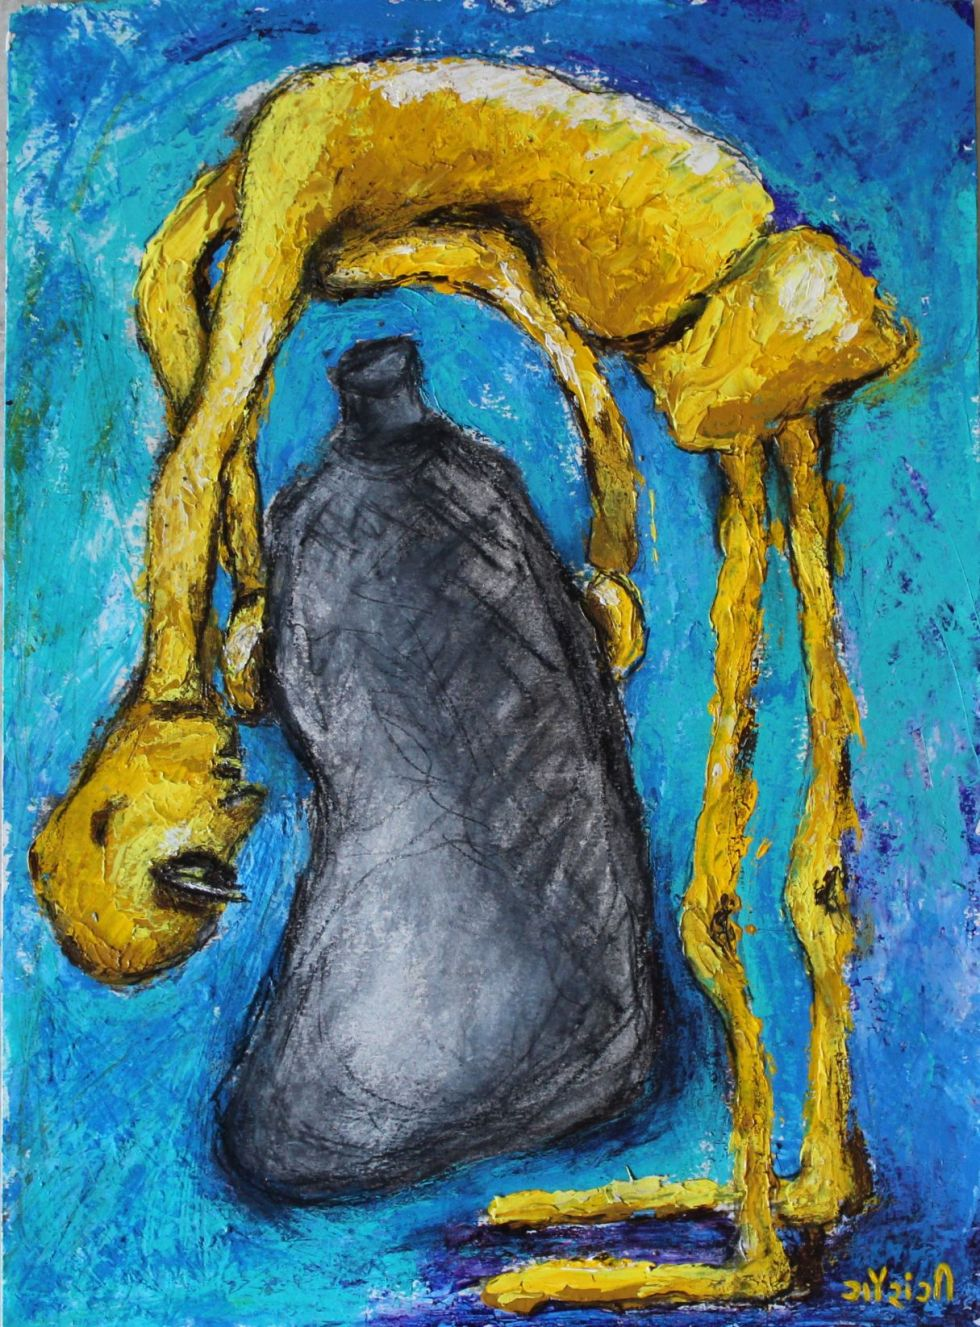 Title: Seeking, searching, inquiring Medium: Acrylic and charcoal on watercolour paper Size: 11.7*16.5 inches / 29.7*41.91 cm (2018) Artist: gaurangi mehta shah